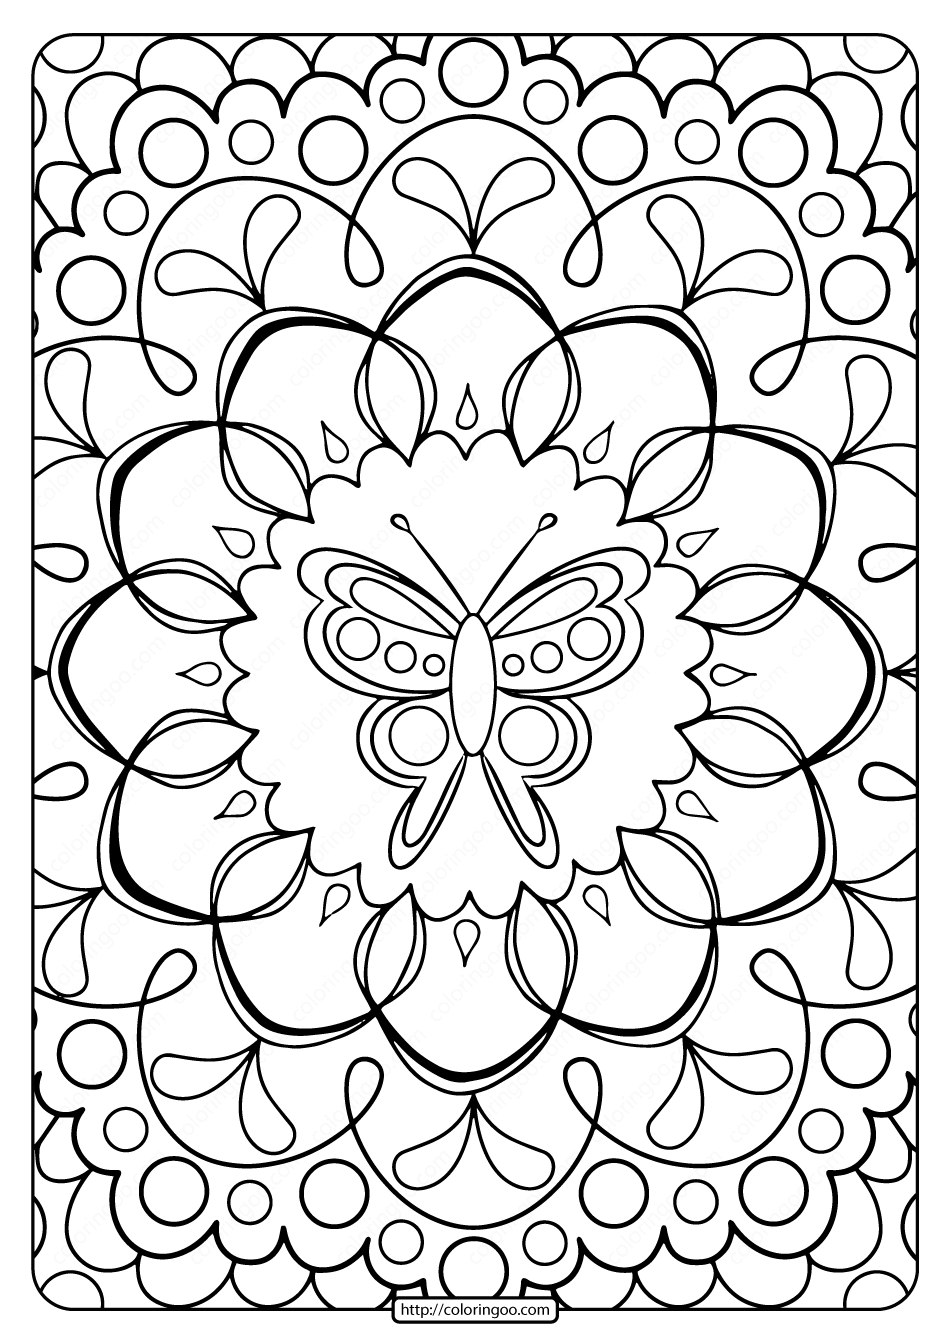 free printable pictures to color free printable butterfly adult coloring pages to color free pictures printable